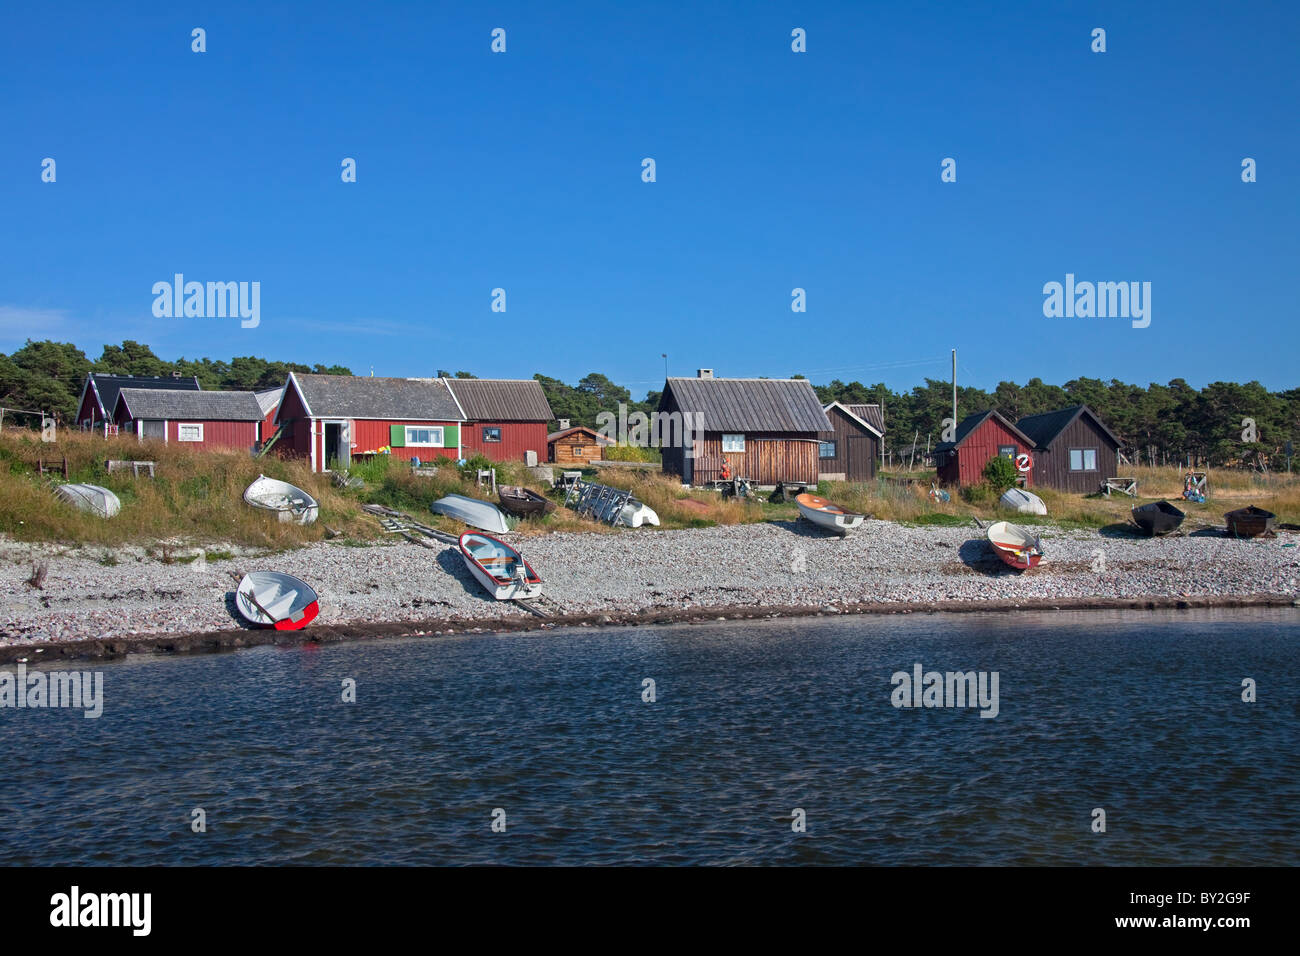 Fishing boats at the village Nyhamn, Gotland, Sweden - Stock Image